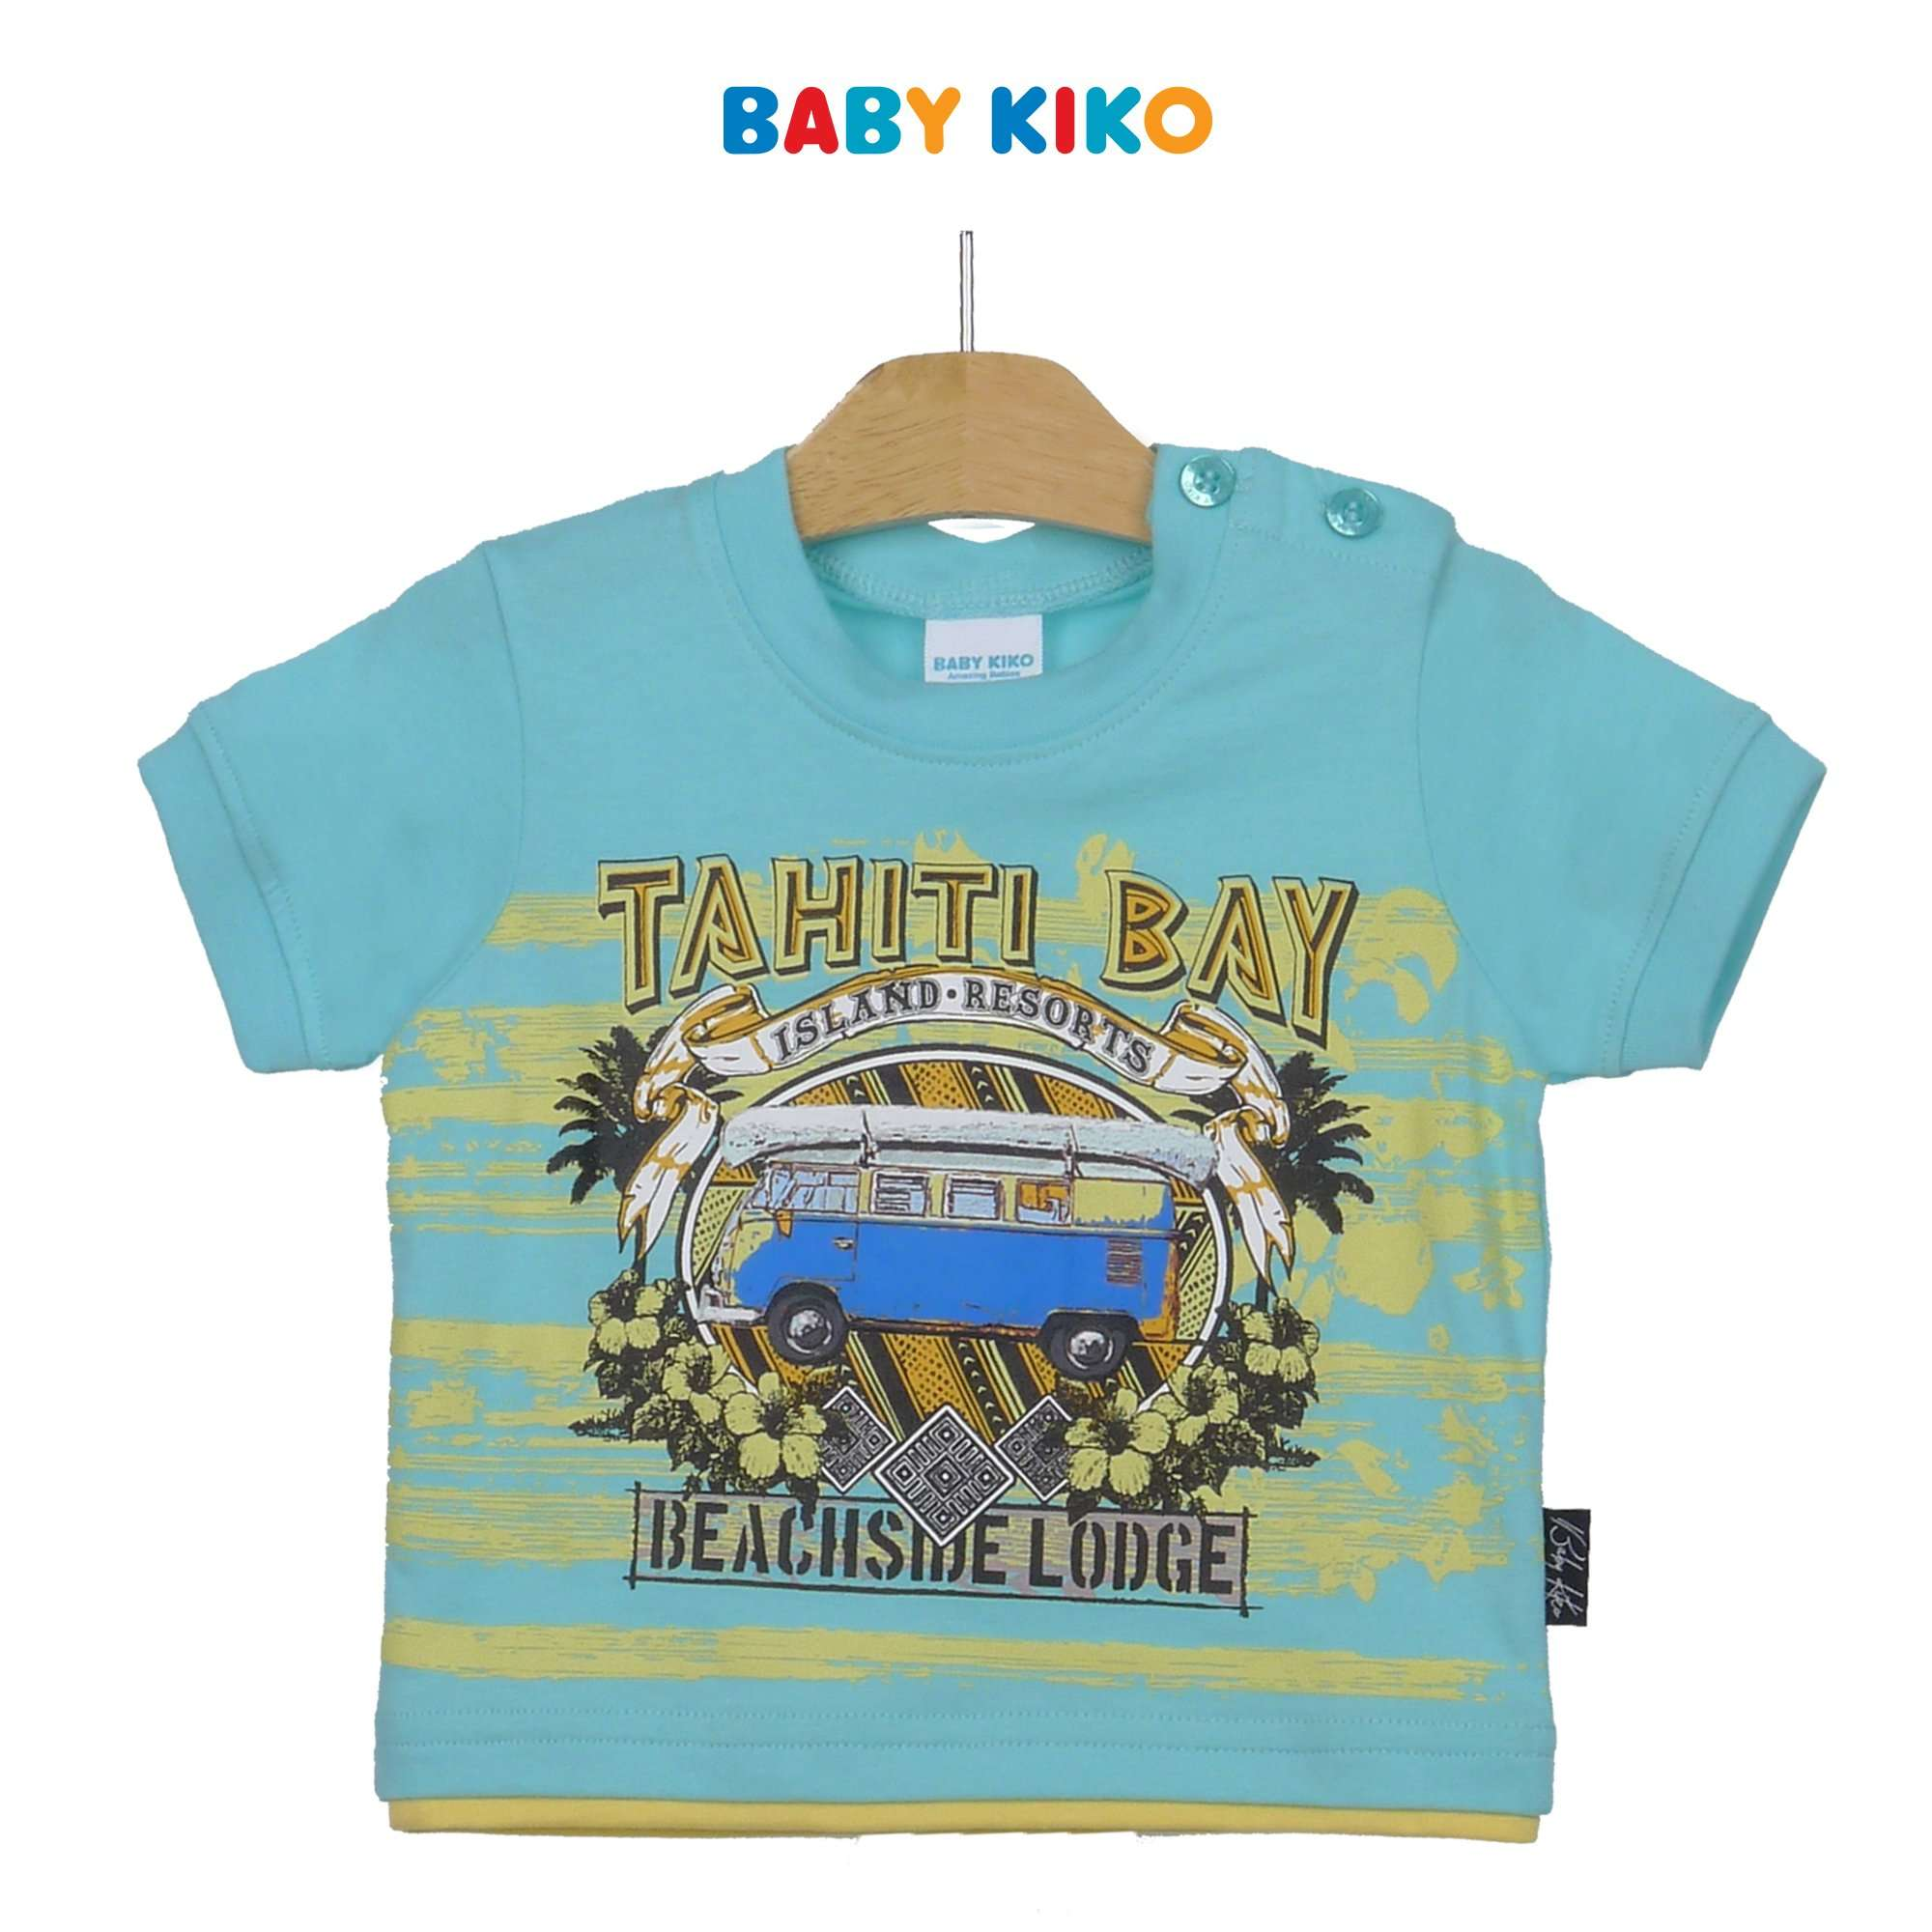 Baby KIKO Baby Boy Short Sleeve Tee 330083-111 : Buy Baby KIKO online at CMG.MY